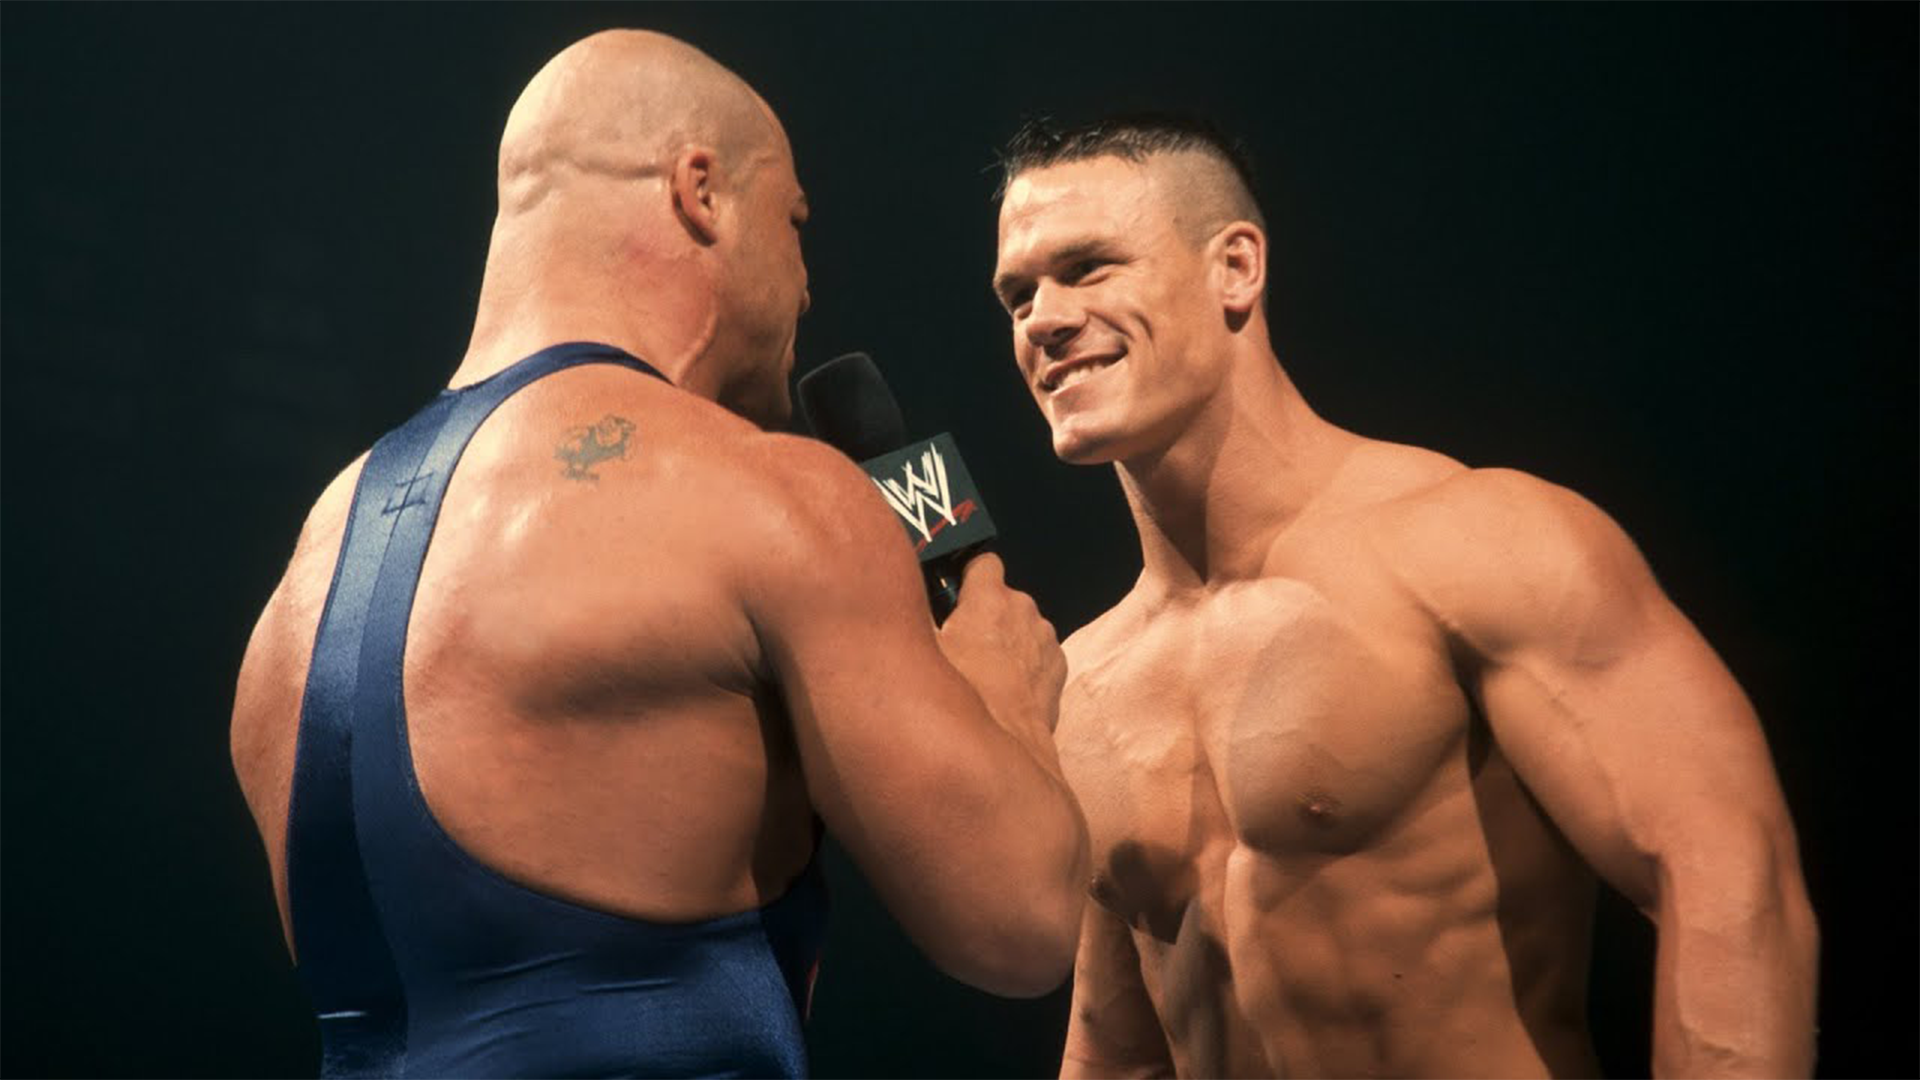 Top 5 WWE Superstars of the Ruthless Aggression Era screen capture